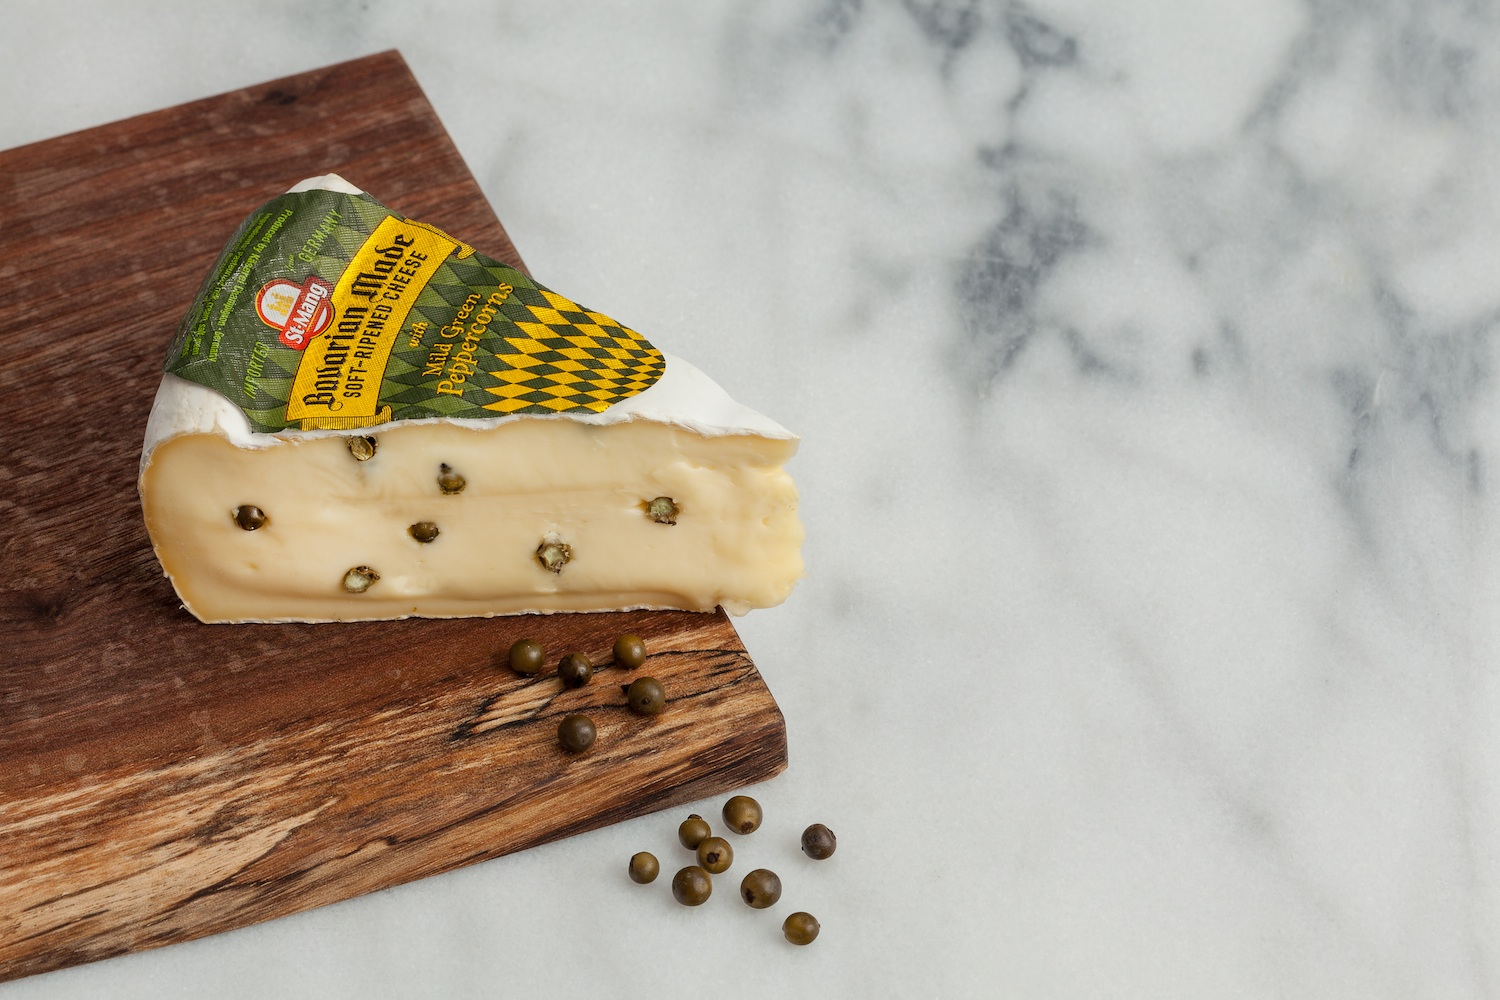 Mild Green Peppercorns -  A double-cream soft-ripened cheese with whole green peppercorns.Velvety and smooth texture, with a warm and spicy undertone of pepper.2014 World Cheese Awards Bronze winner.